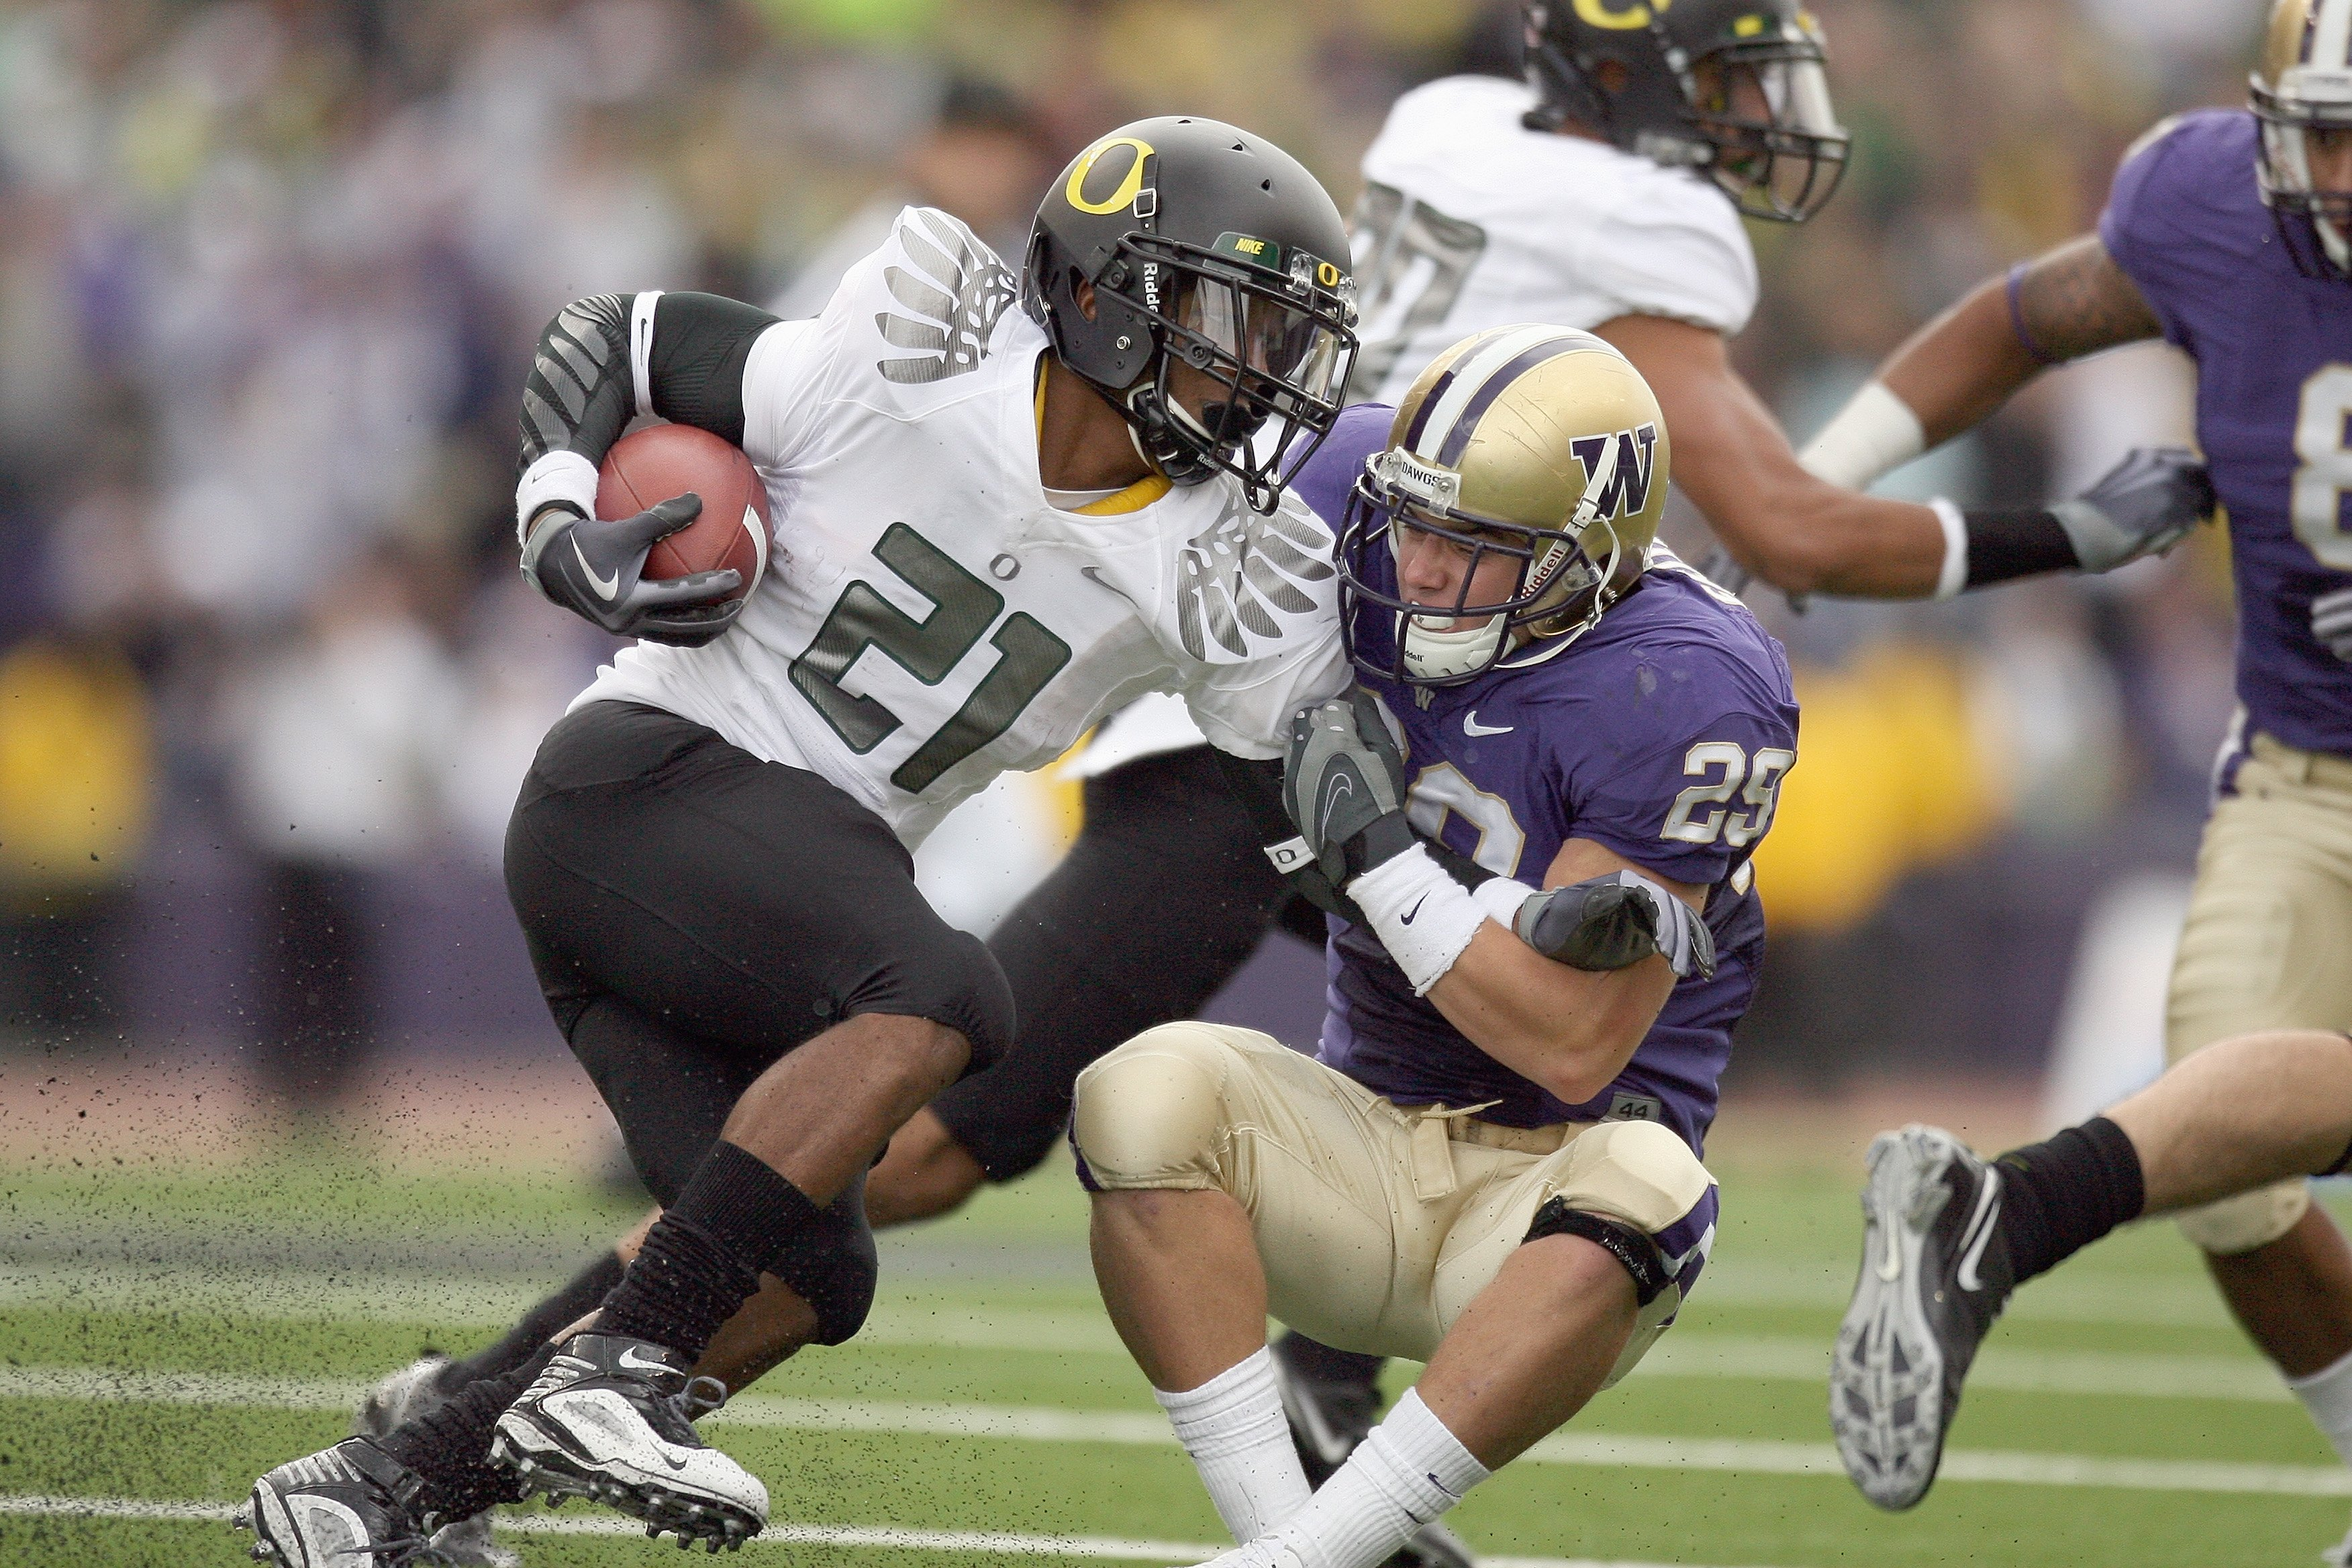 SEATTLE - OCTOBER 24:  LaMichael James #21 of the Oregon Ducks carries the ball against Nate Fellner #29 of the Washington Huskies on October 24, 2009 at Husky Stadium in Seattle, Washington. The Ducks defeated the Huskies 43-19. (Photo by Otto Greule Jr/